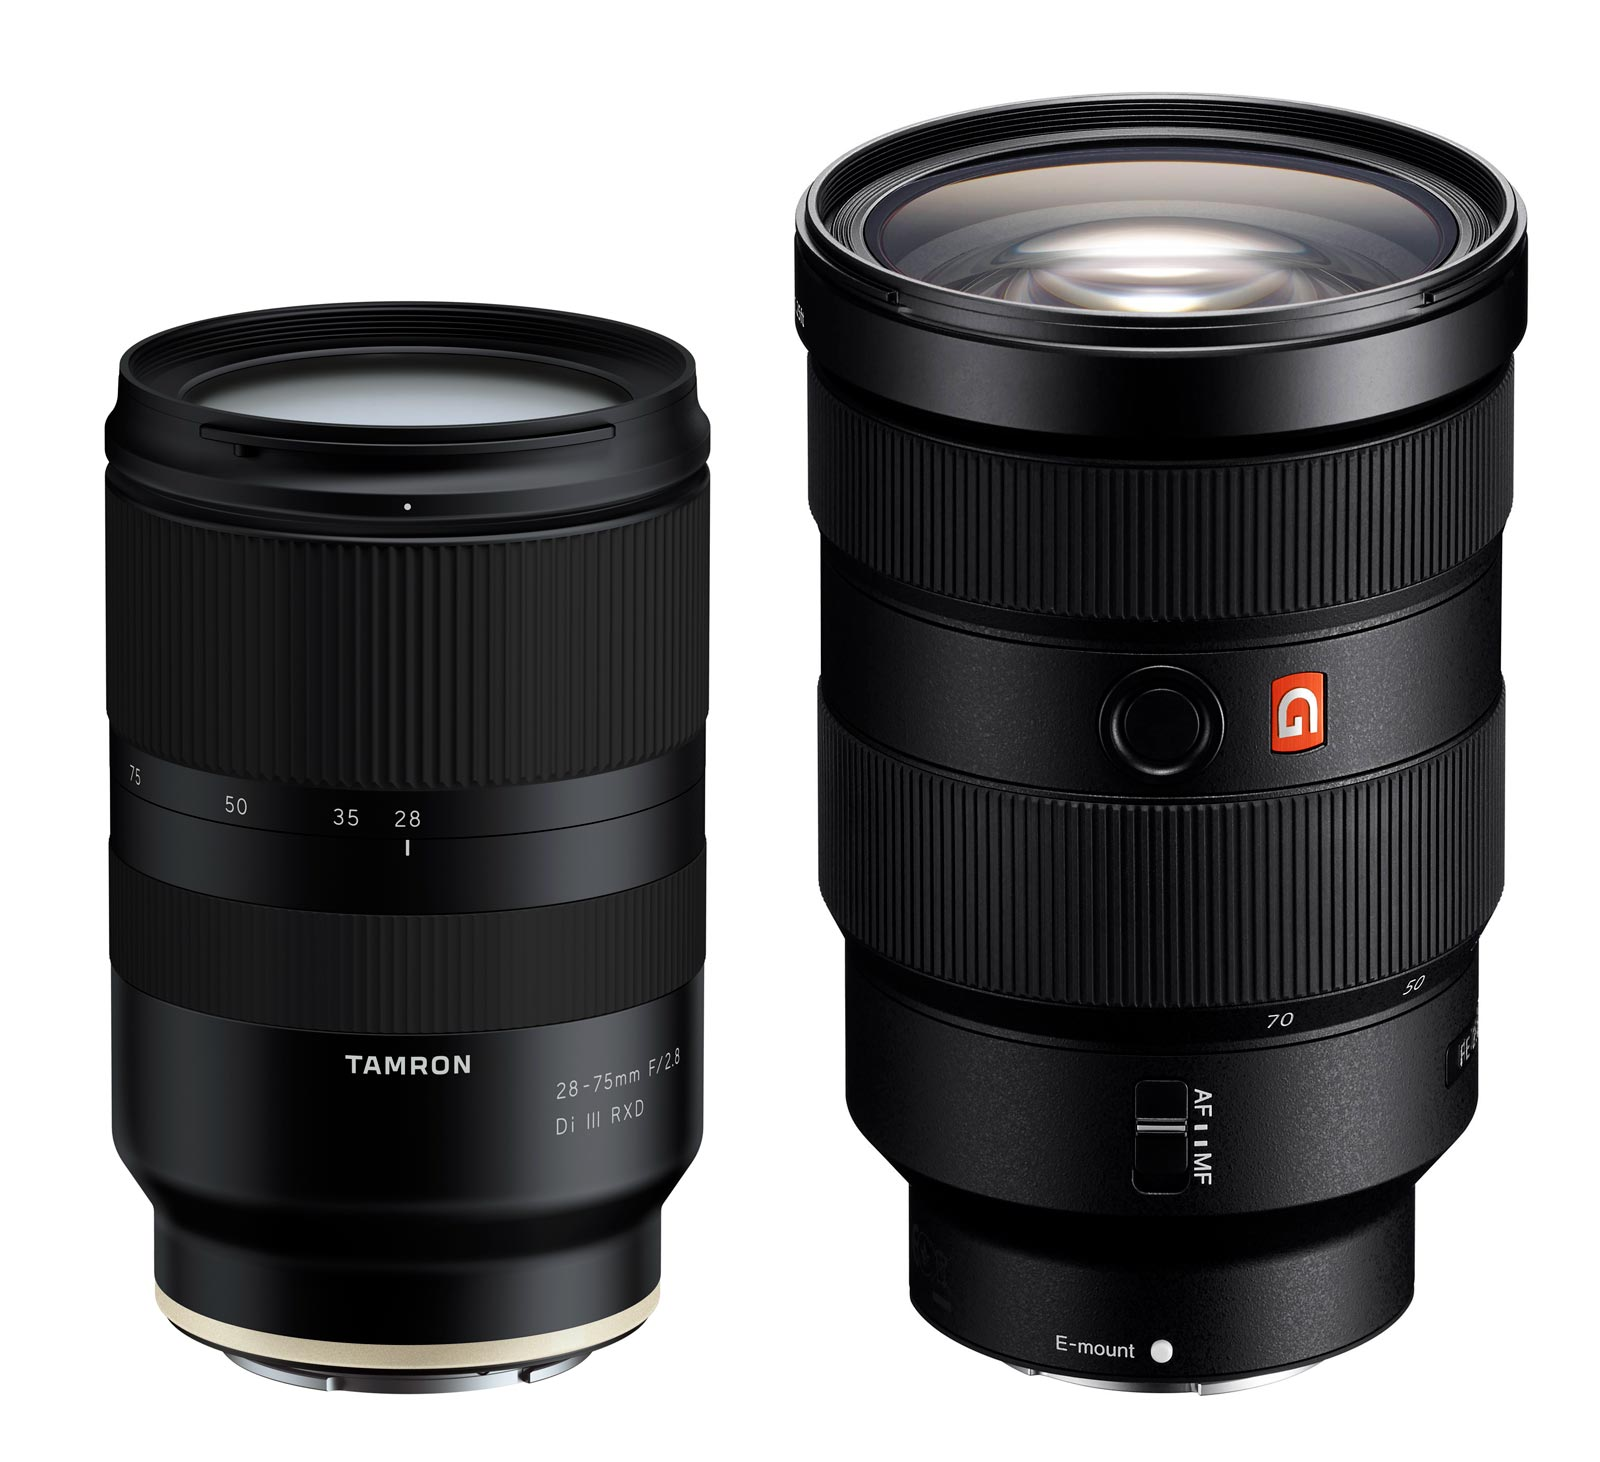 new tamron 28 75 f 2 8 lens their first for sony fe mount. Black Bedroom Furniture Sets. Home Design Ideas